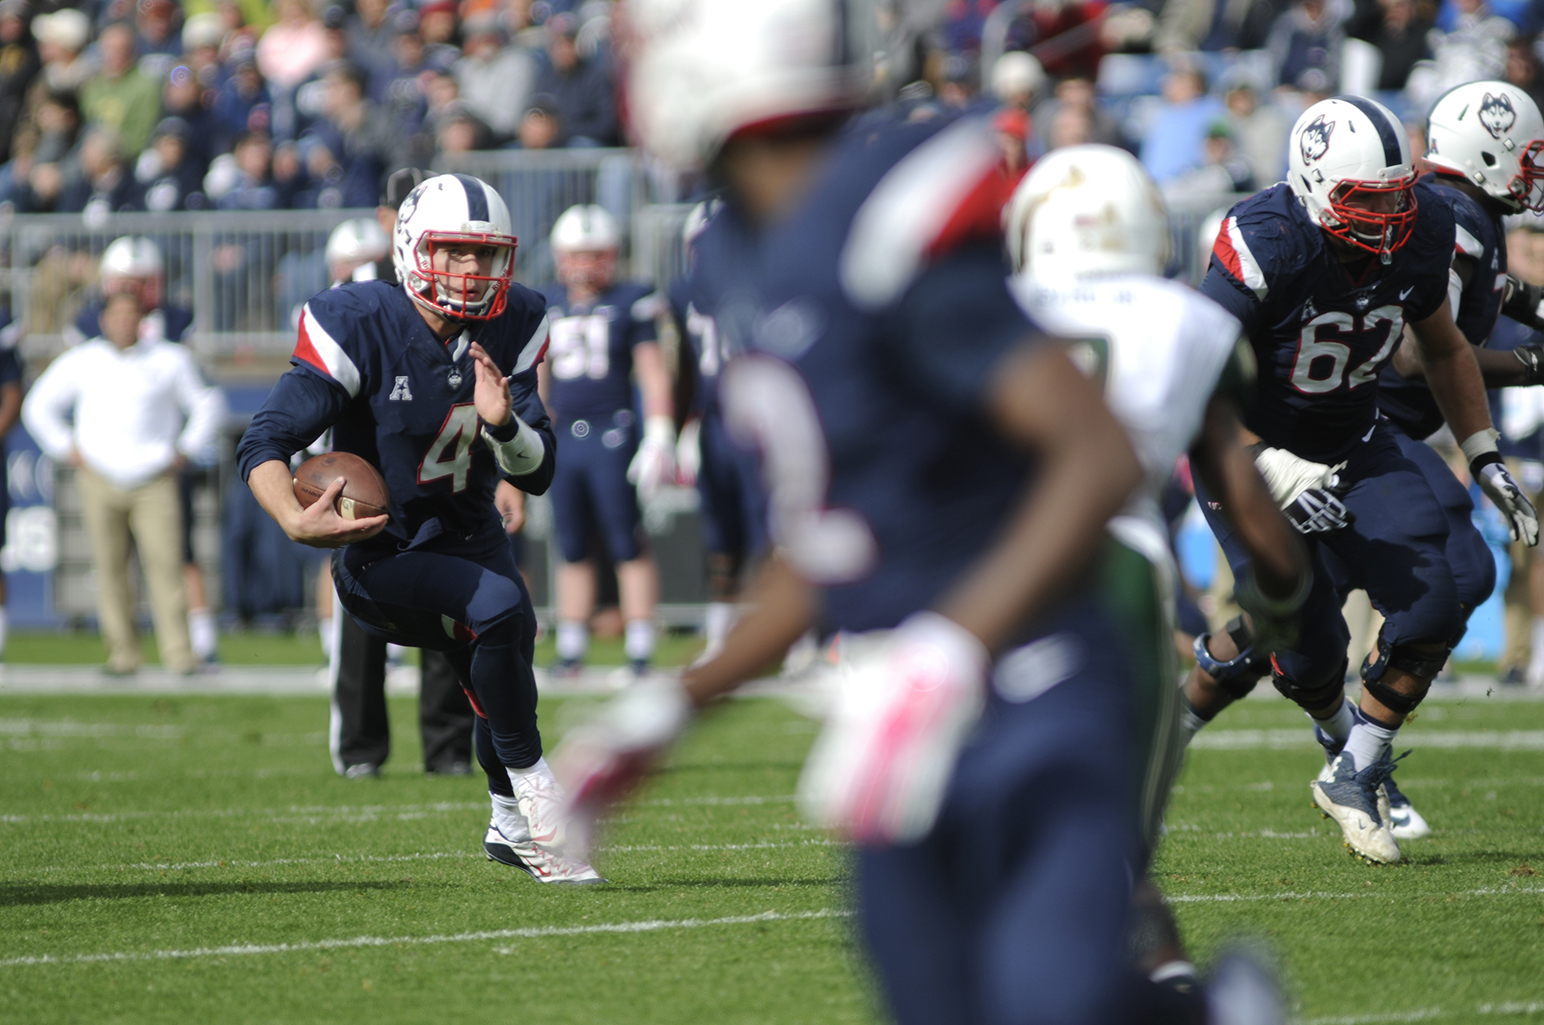 Quarterback Bryant Shirreffs scrambles for yards during UConn's 28-20 loss against USF on Oct. 17, 2015. The Huskies will take on East Carolina on Saturday. (Bailey Wright/The Daily Campus)